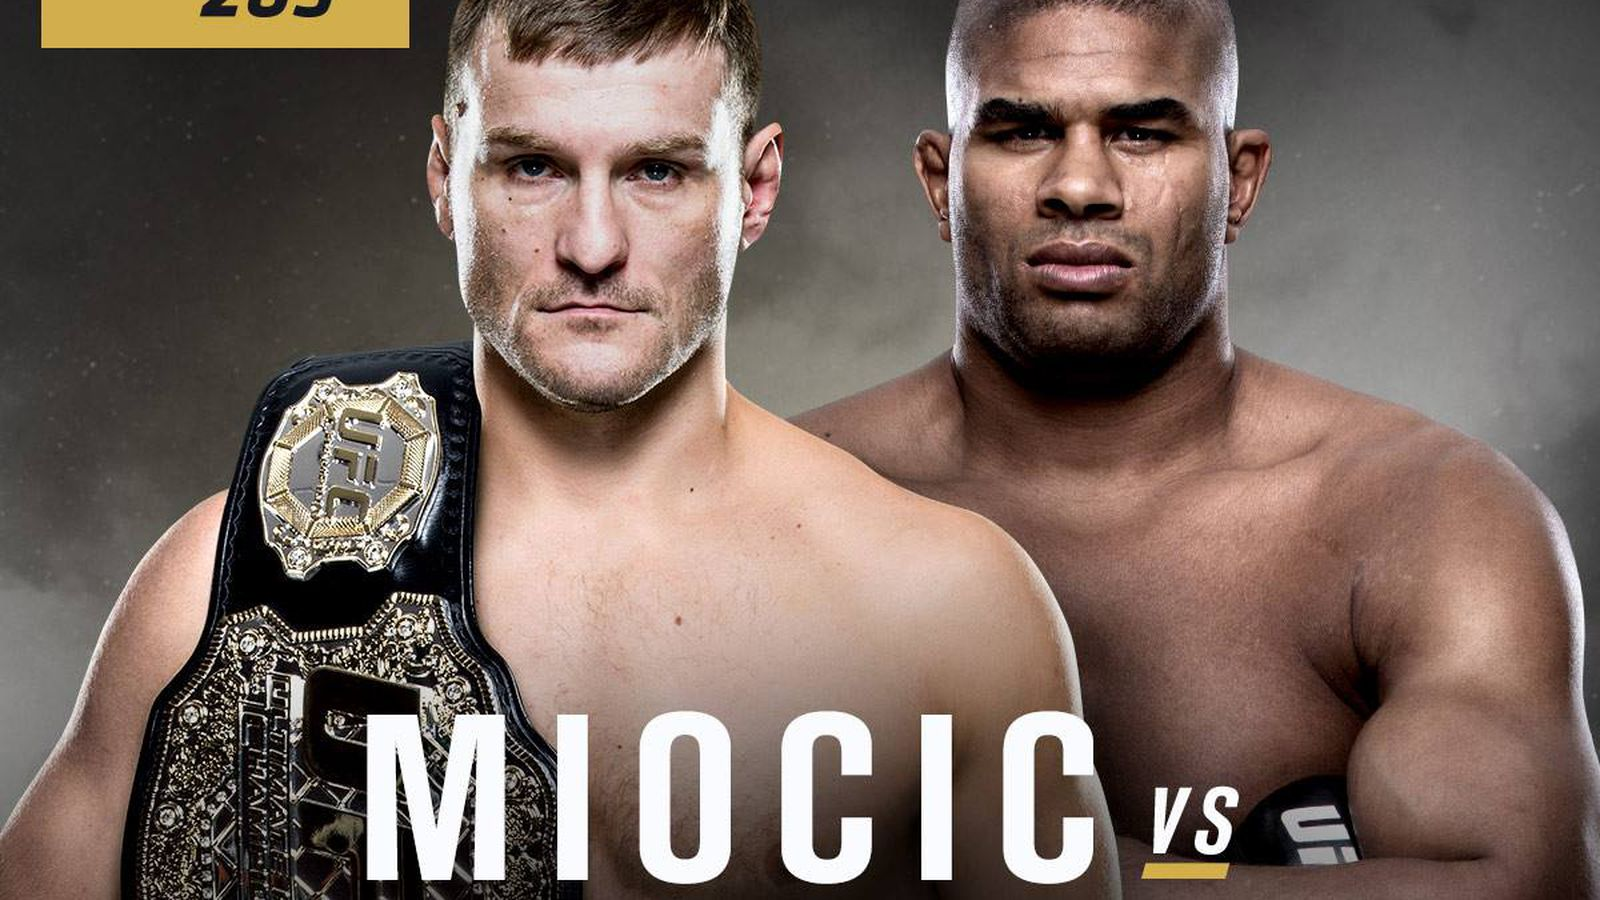 Latest ufc 203 fight card and rumors for miocic vs overeem on sept